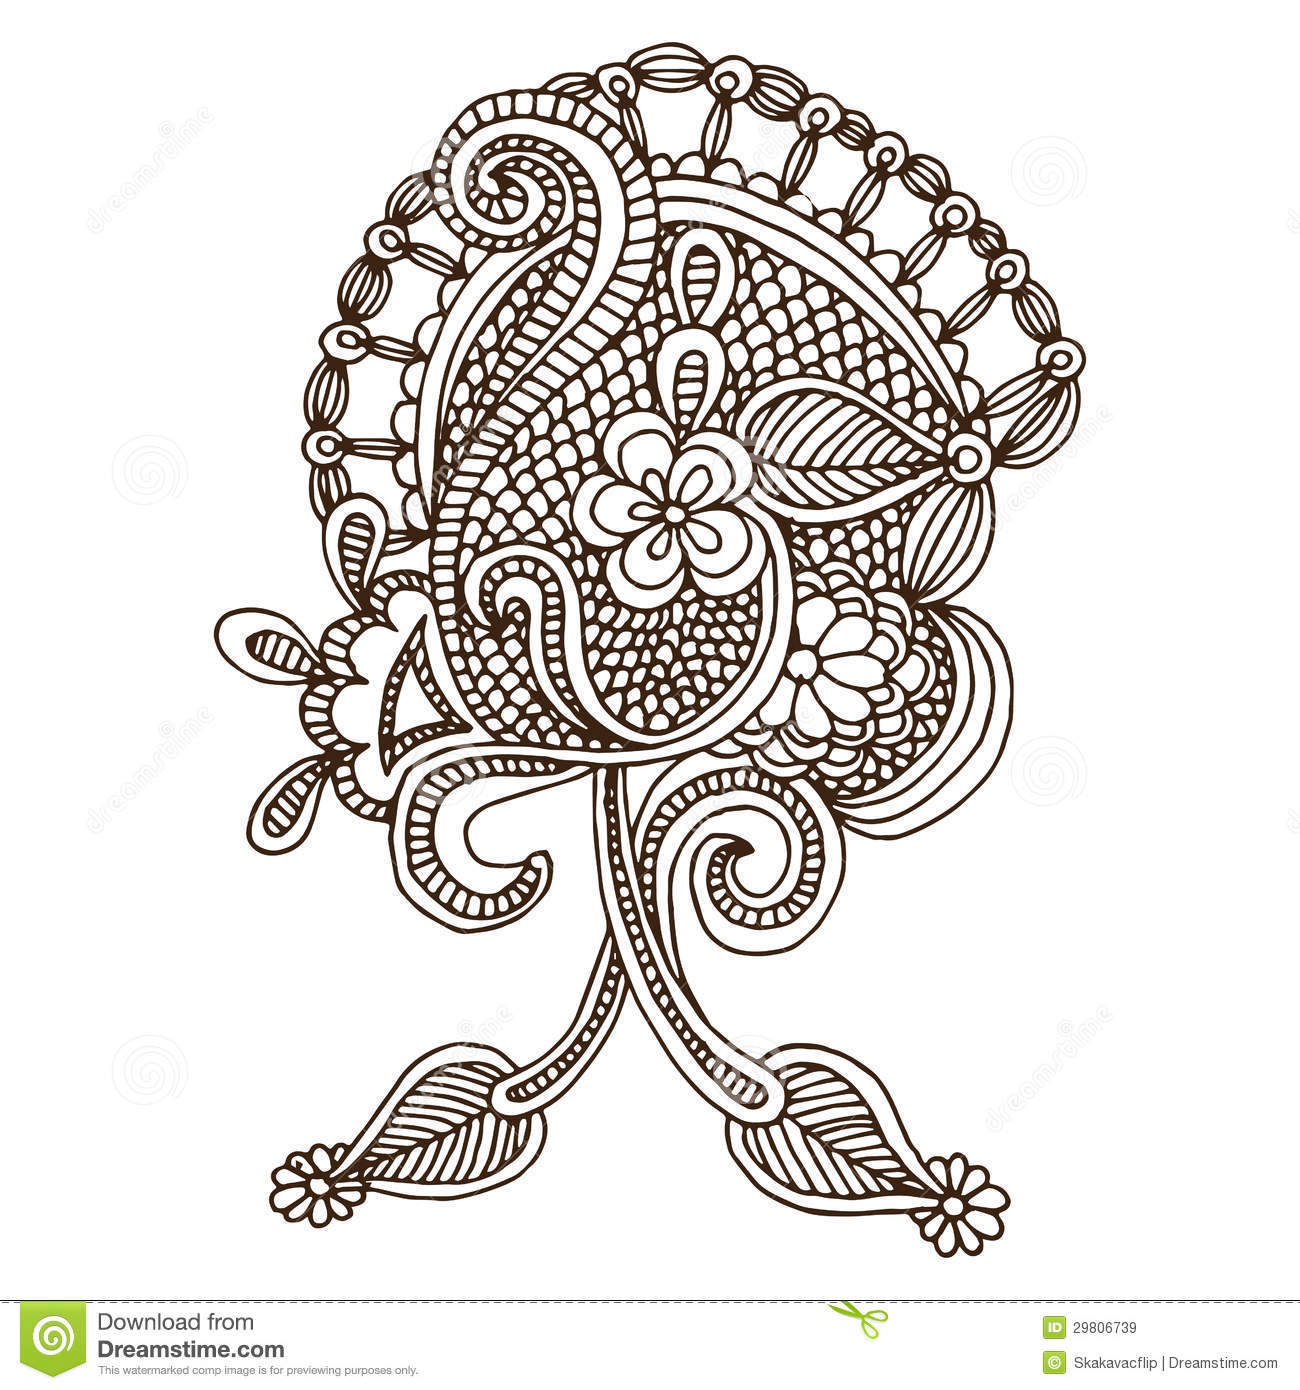 Line Drawing Embroidery : Neckline embroidery design stock illustration image of